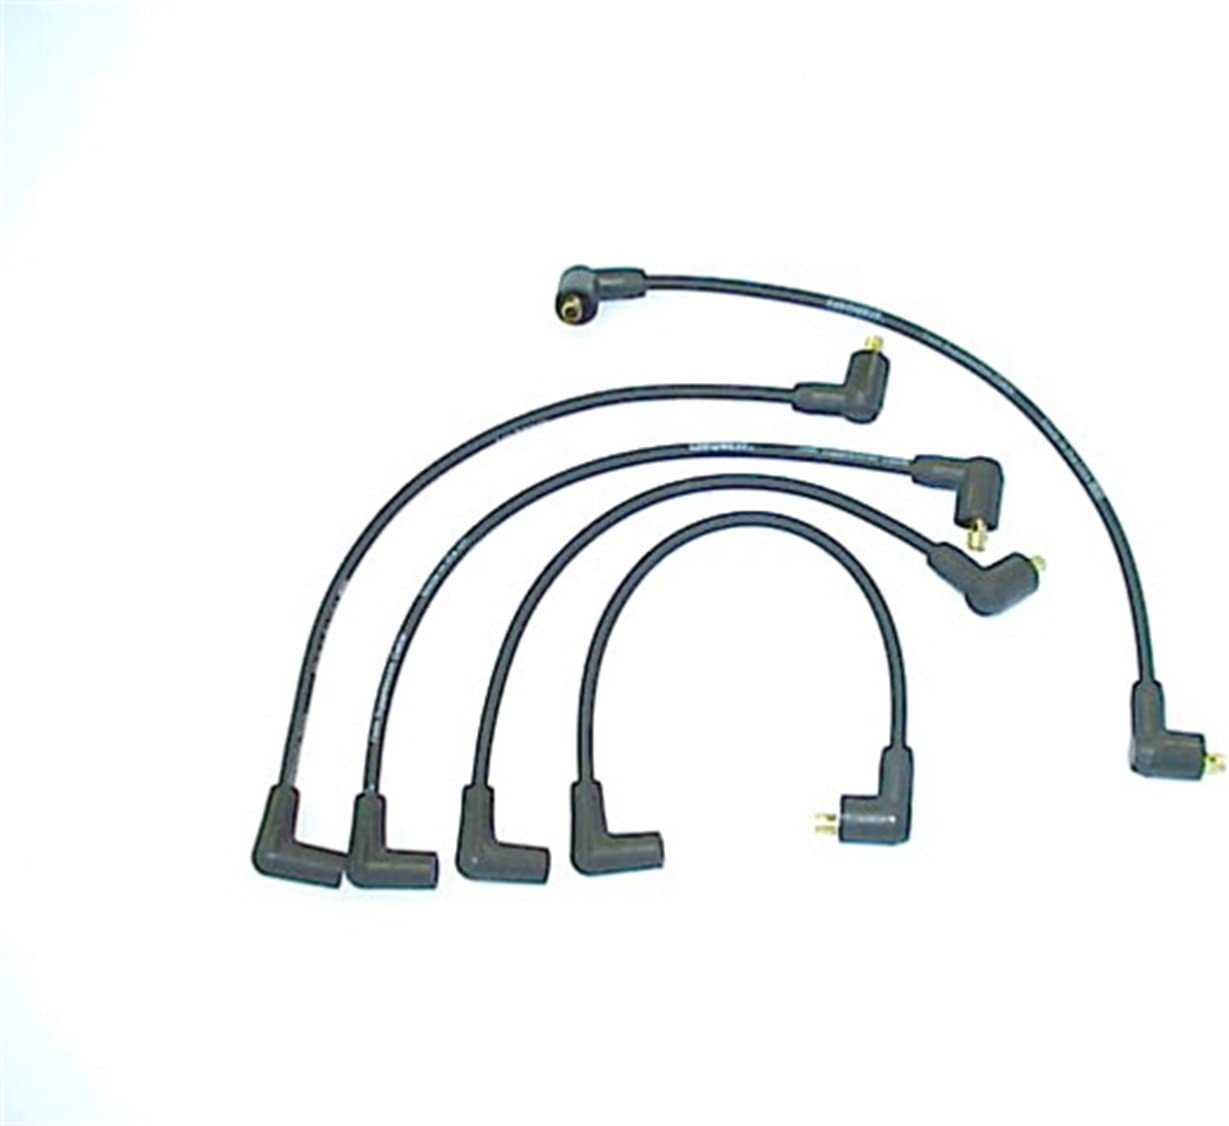 Accel 104018 ProConnect OEM Replacement 90 Degree Angle Boot Black Spark Plug Wires 5pc Set